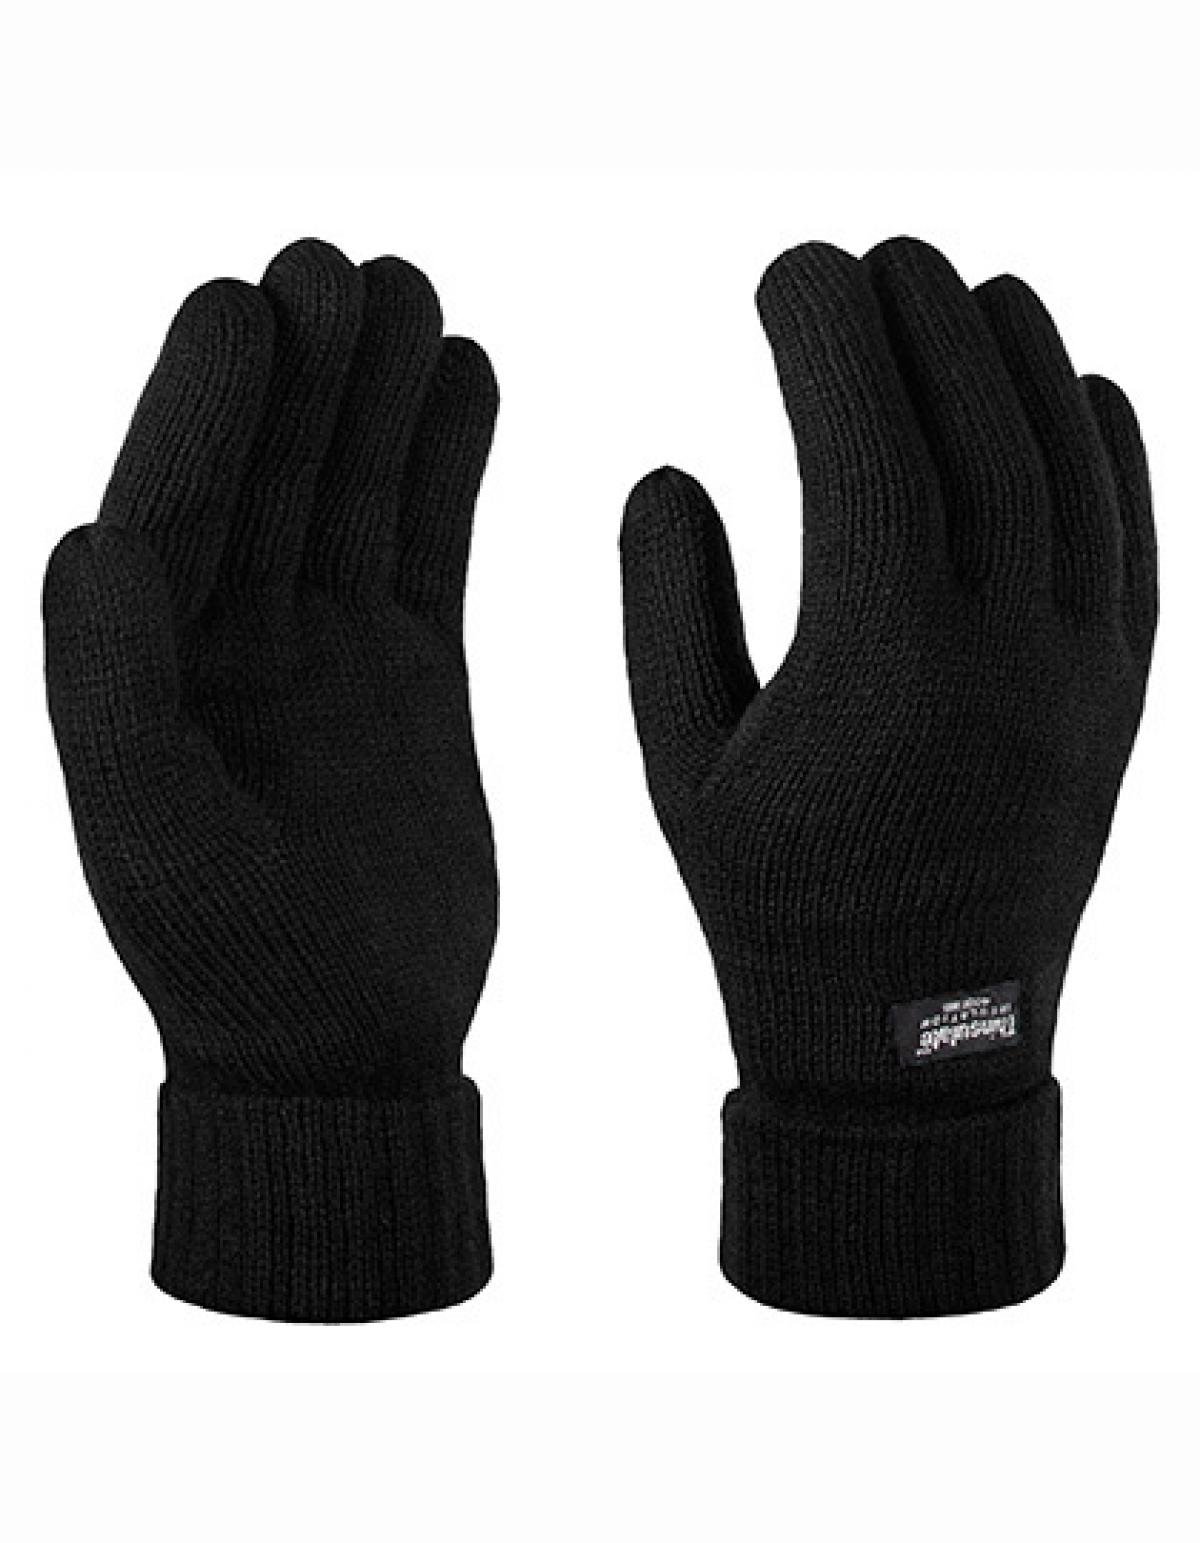 thinsulate gloves winter handschuhe rexlander s. Black Bedroom Furniture Sets. Home Design Ideas